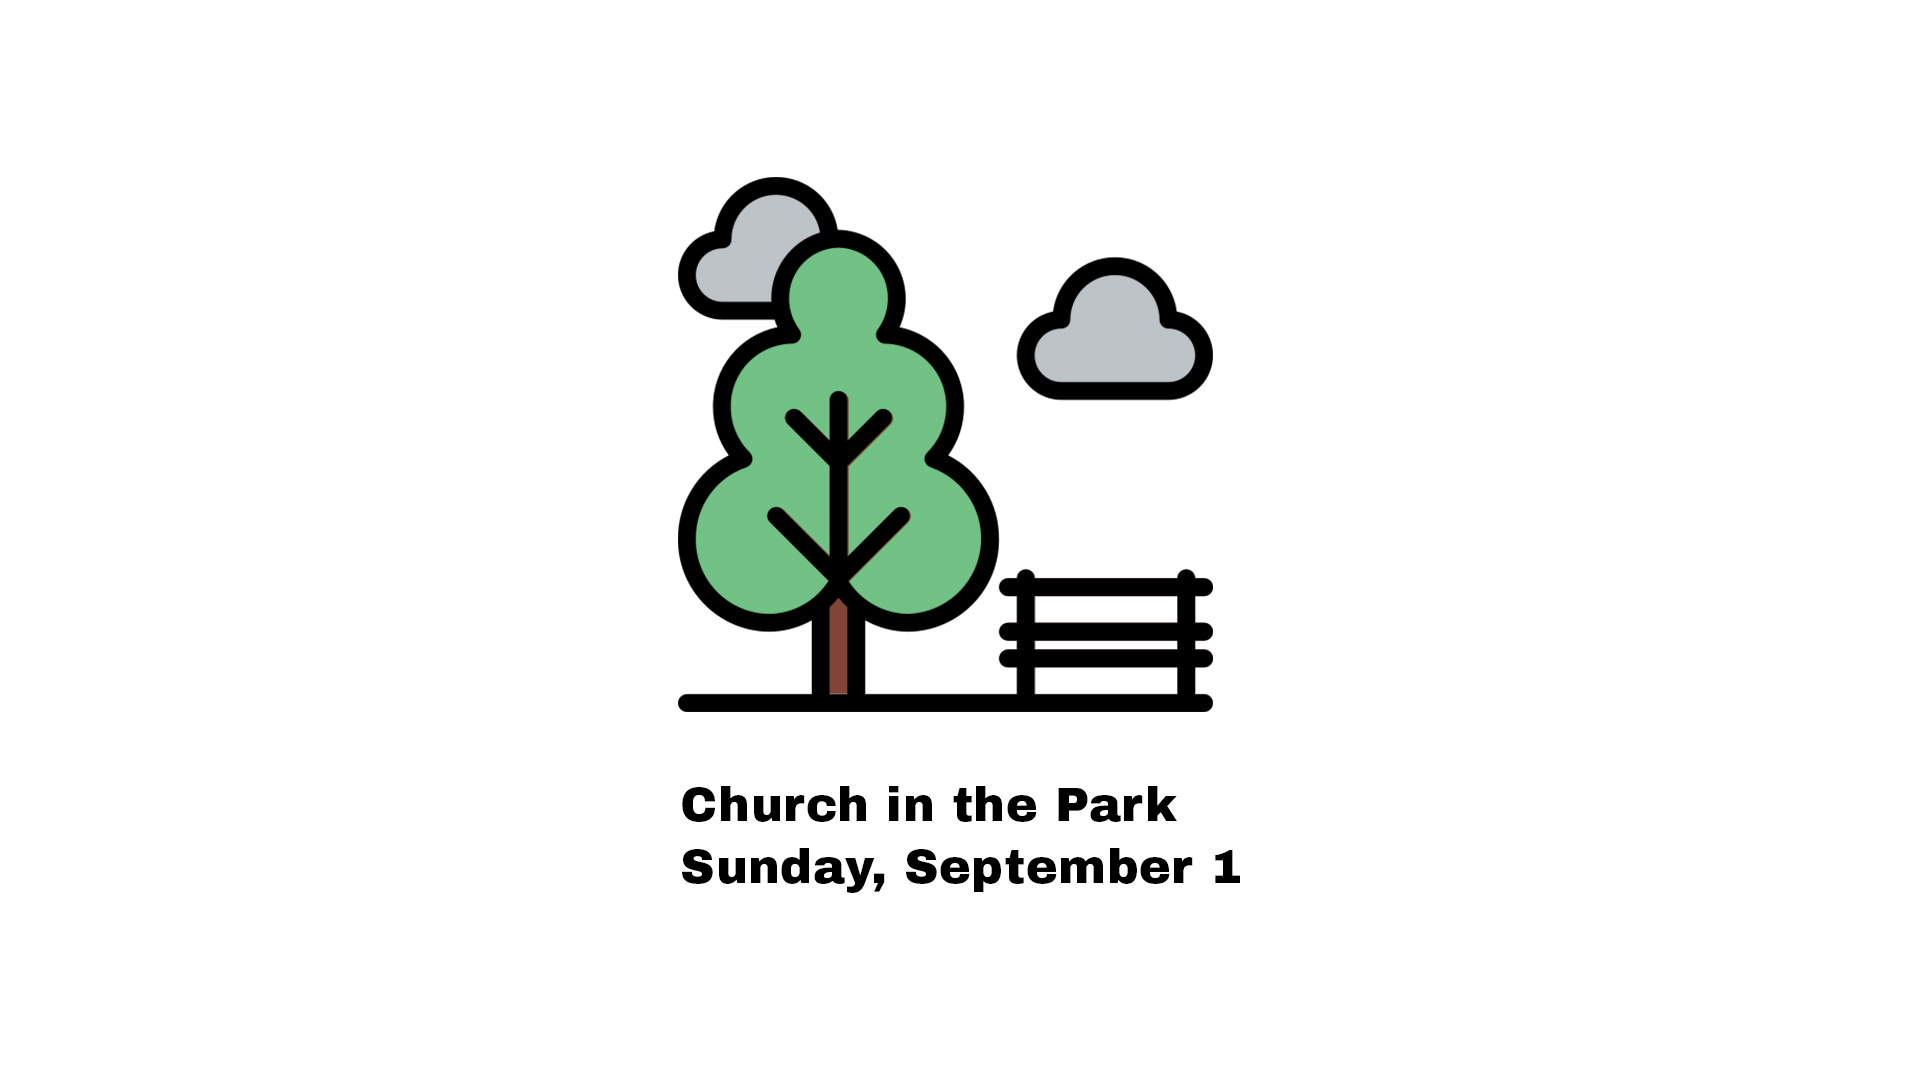 Church in the Park.jpg